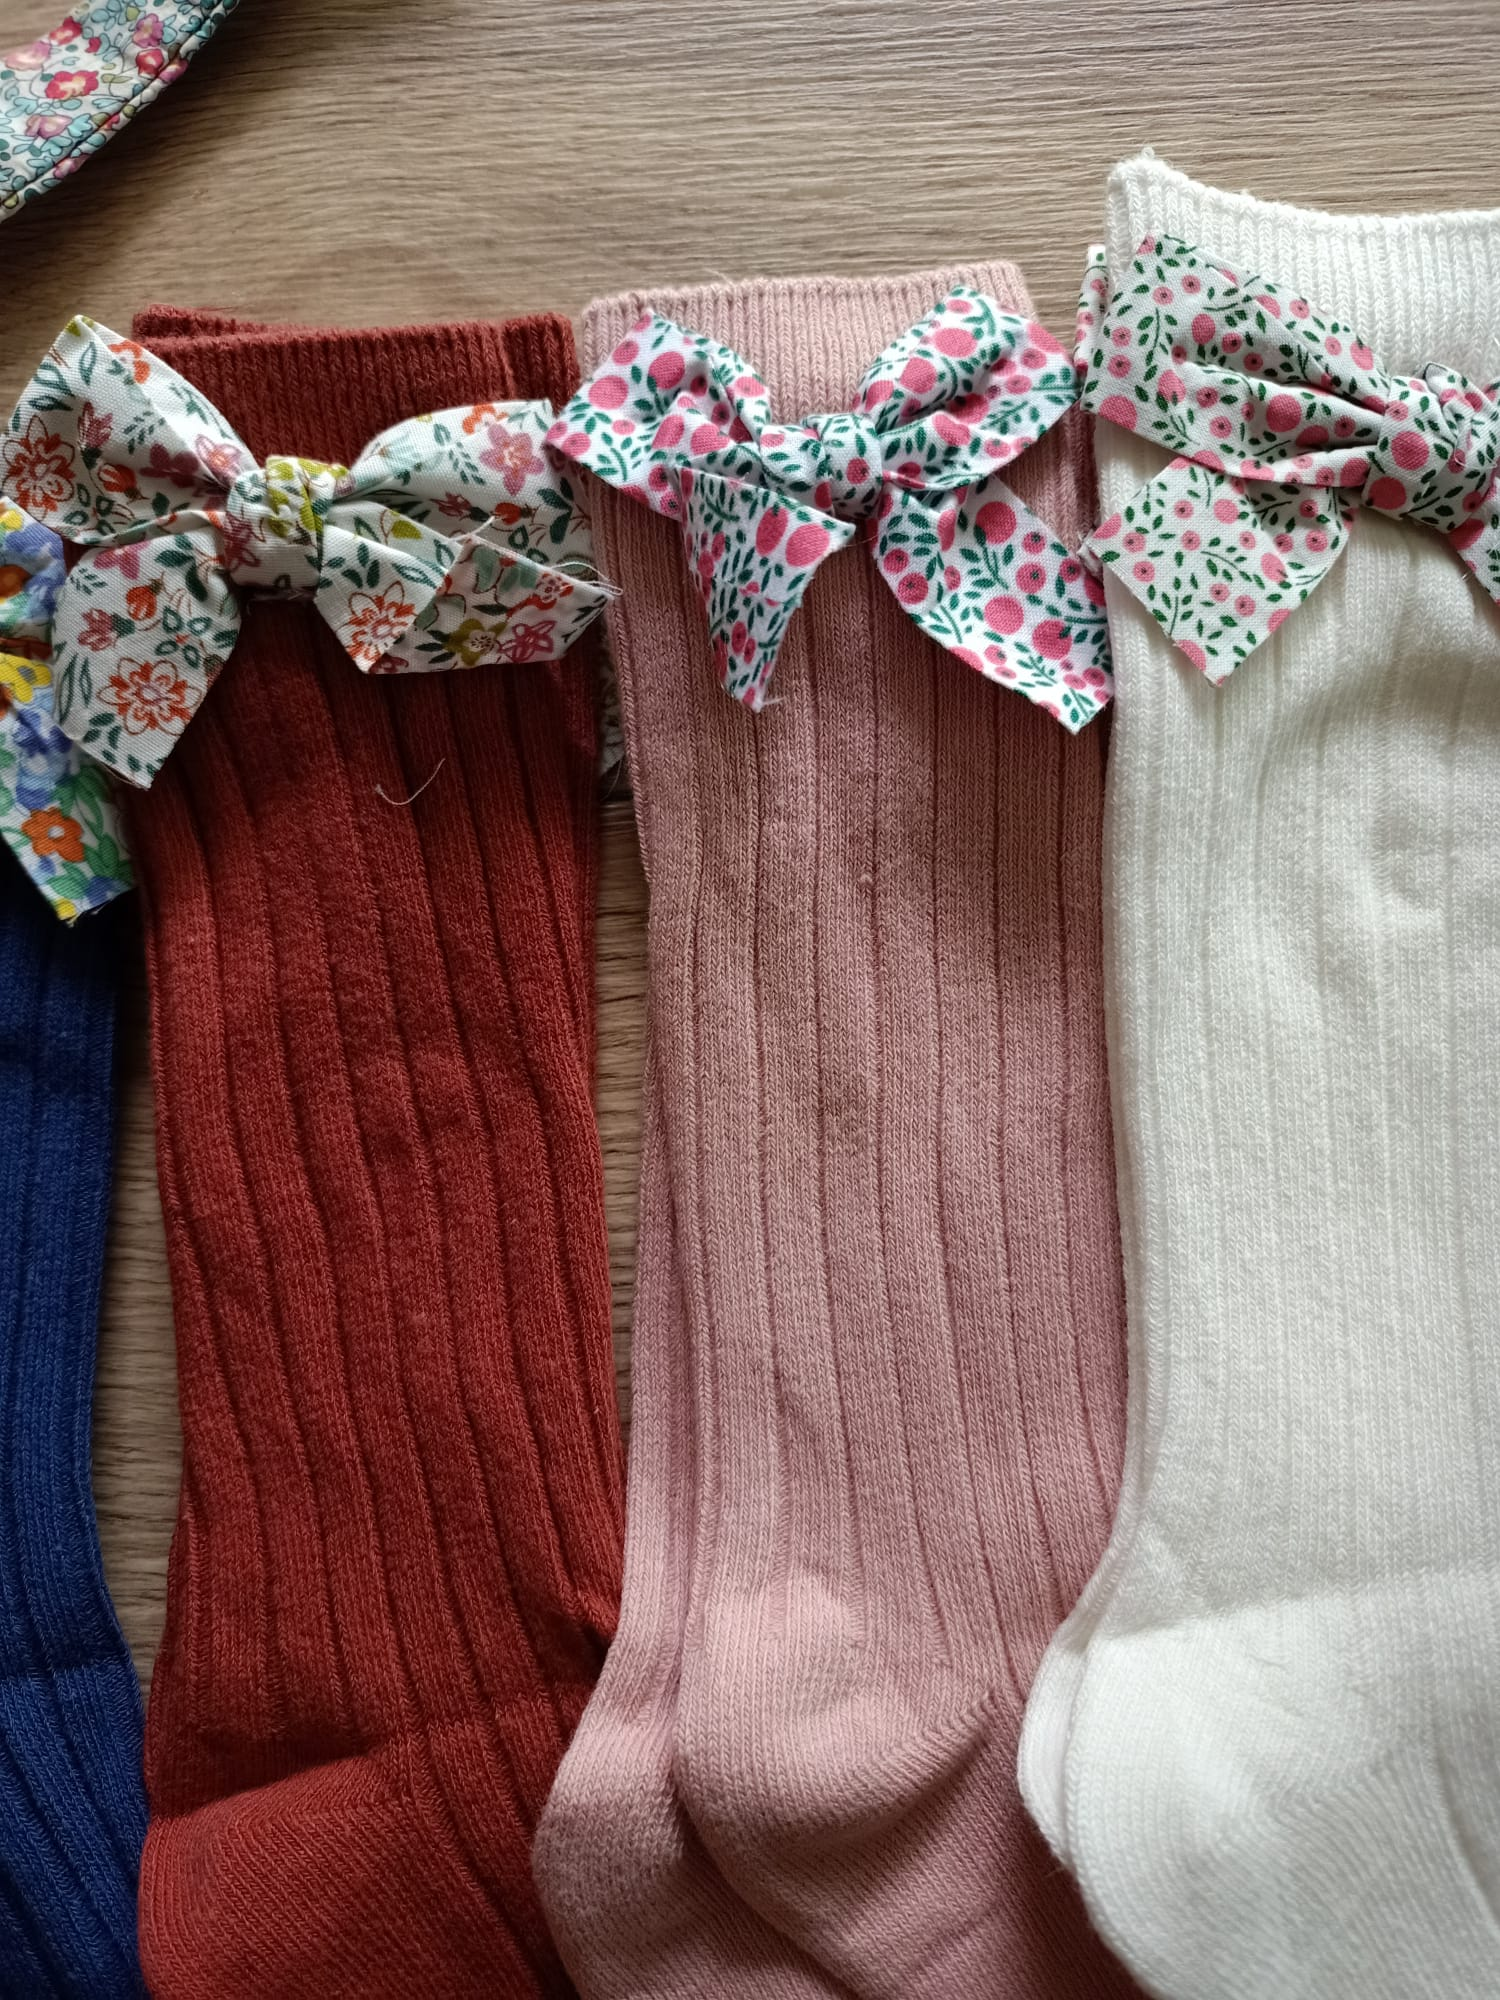 0-5 Years Toddlers Girls Socks Flower Bows Knee High Long Soft Cotton Baby Socks Stripped Children Socks Princess Style photo review